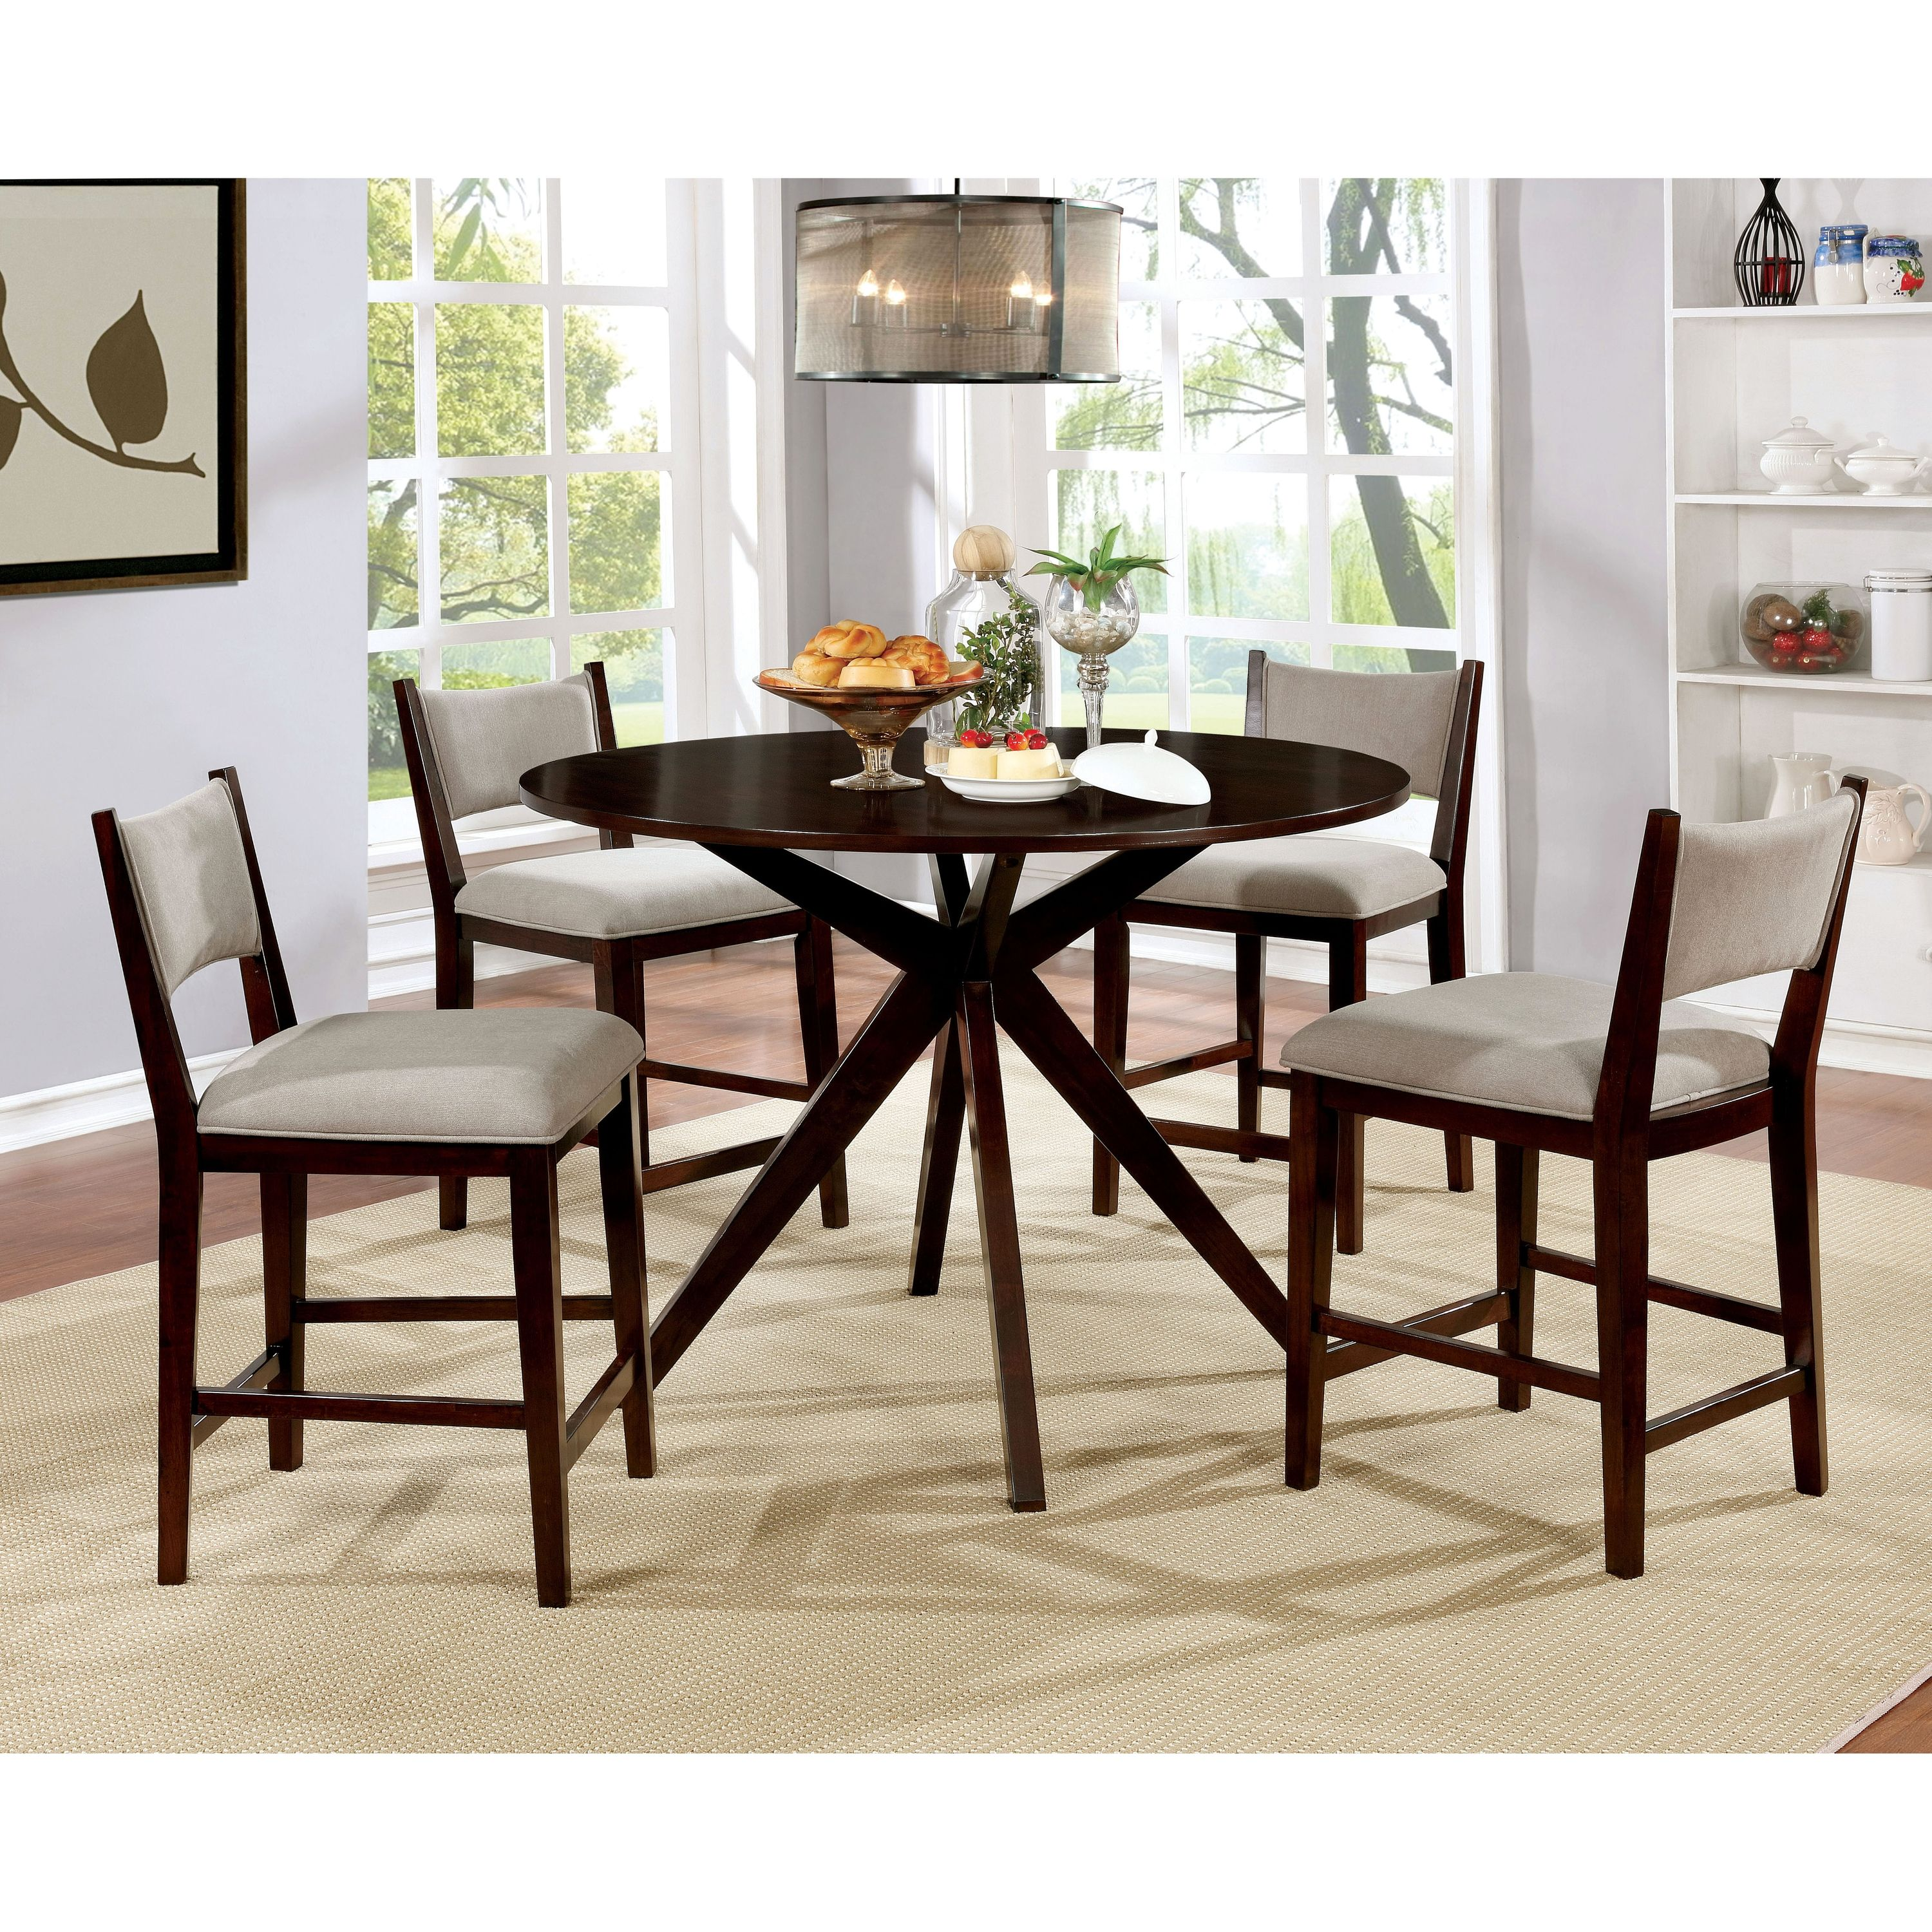 Furniture of America Wallace 5 Piece Contemporary Round Counter Height Dining Table Set, Brown Cherry